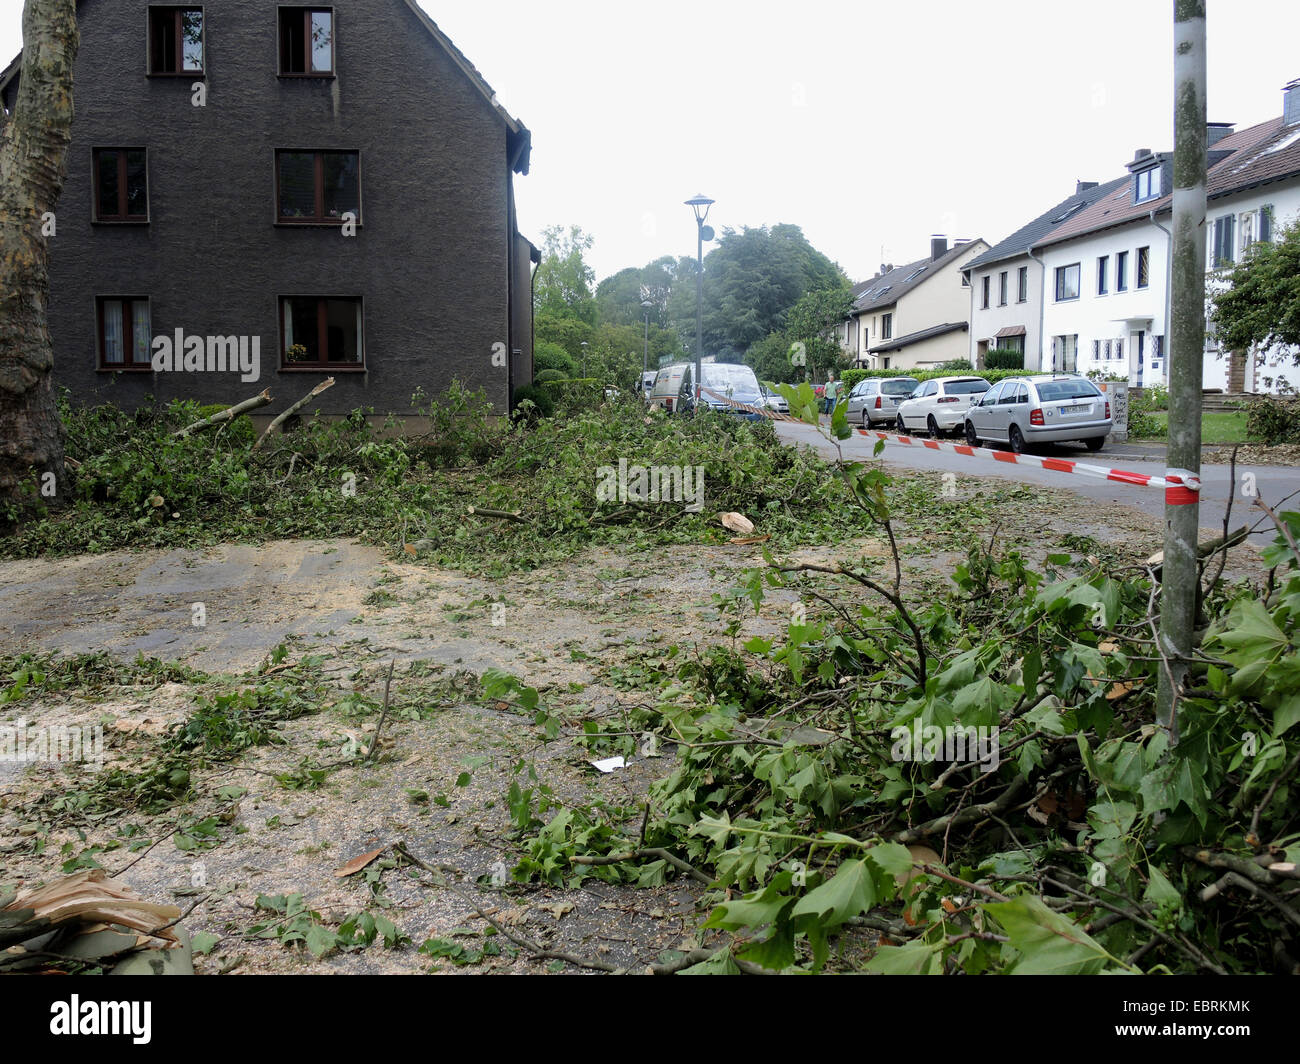 blocked street after the storm front Ela at 2014-06-09, Germany, North Rhine-Westphalia, Ruhr Area, Bochum - Stock Image